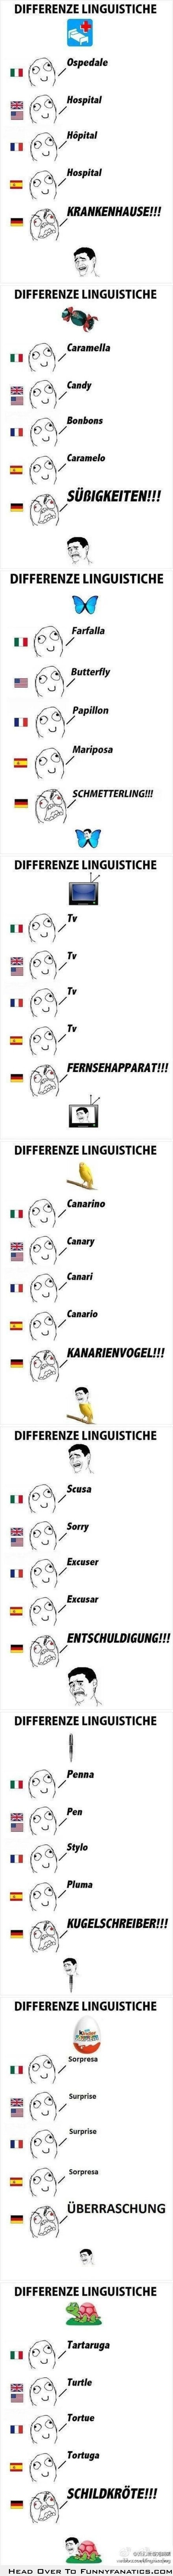 Different languages.